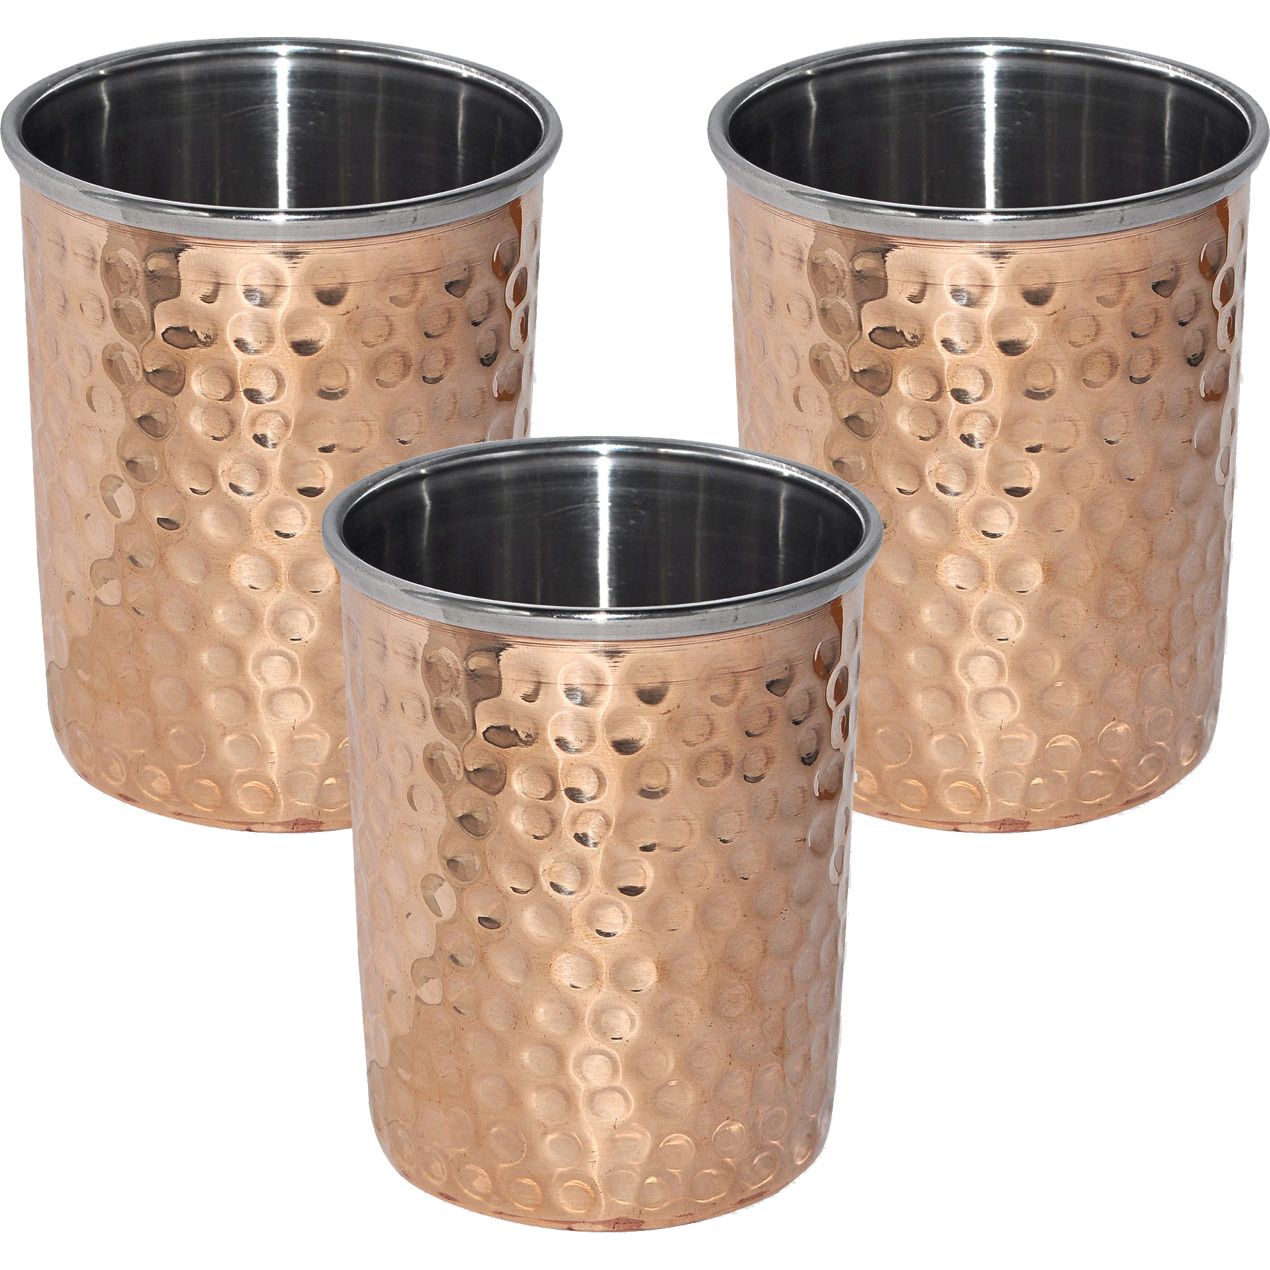 Set of 3 - Prisha India Craft B. Copper Cup Water Tumbler - Handmade Water Glasses - Traveller's Copper Mug for Ayurveda Benefits